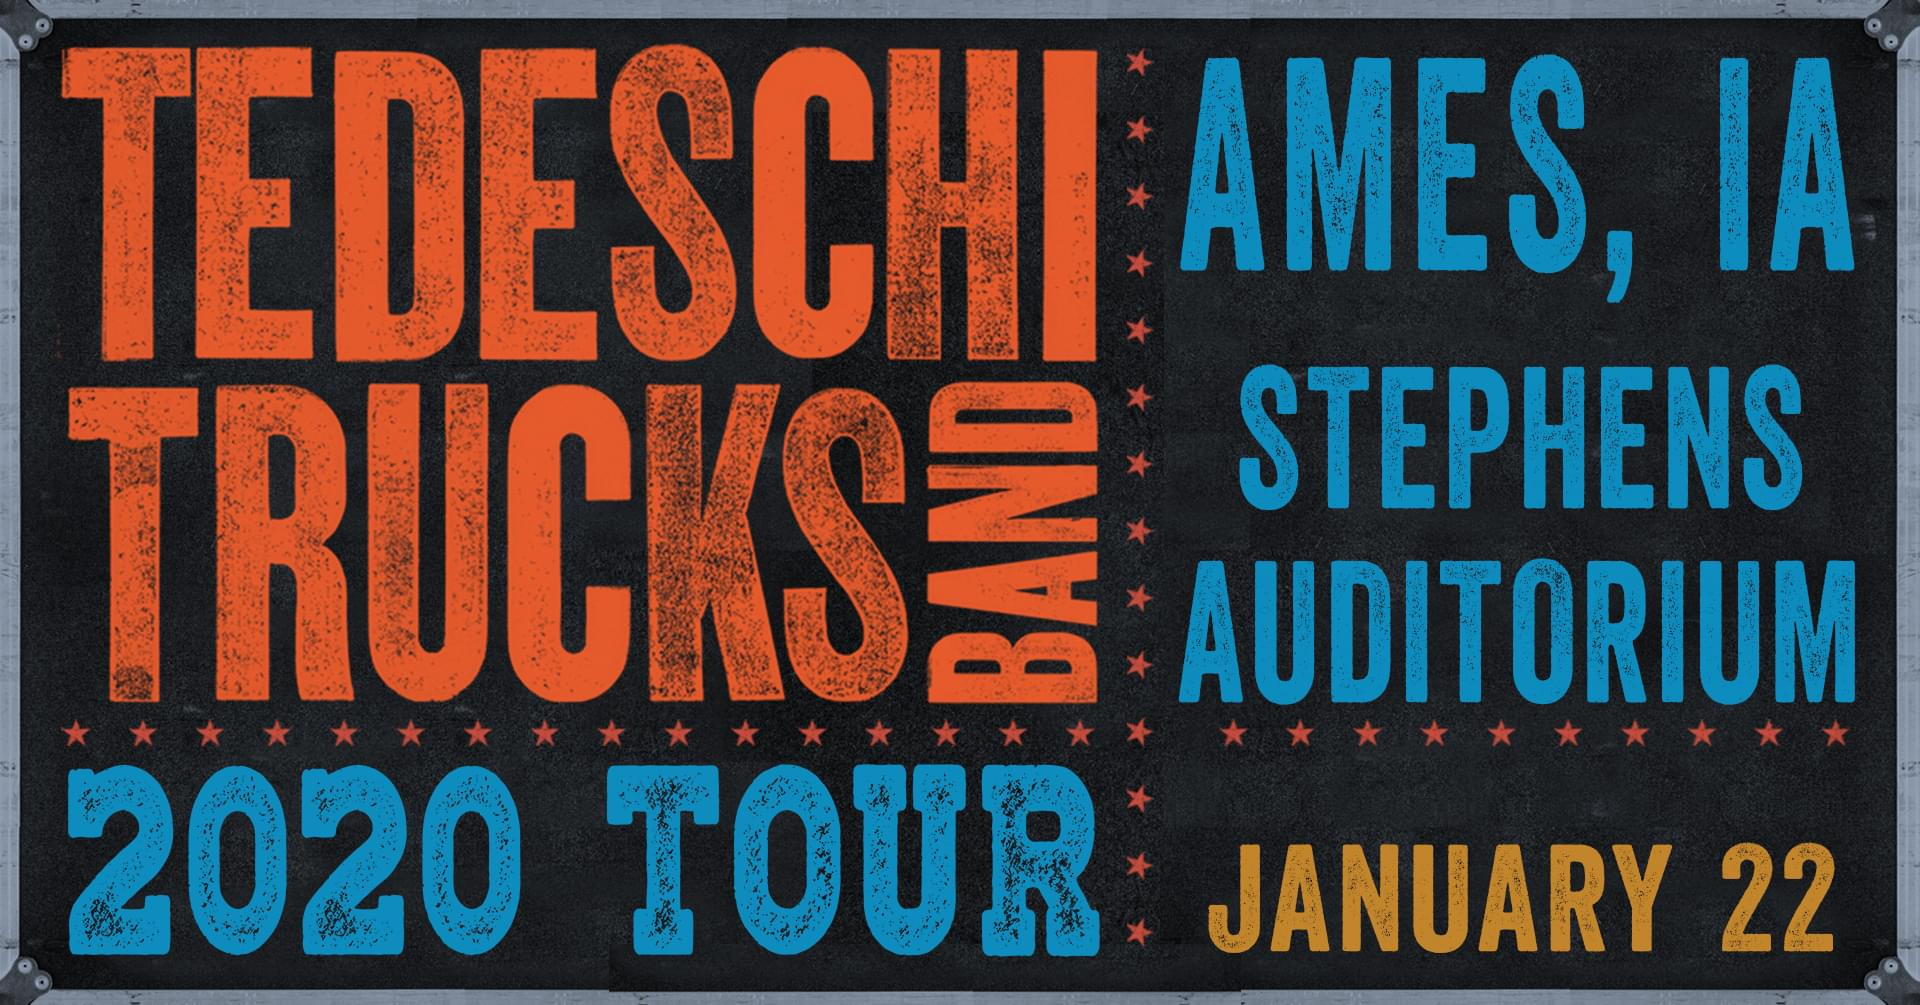 Tedeschi Trucks at Stephens Auditorium